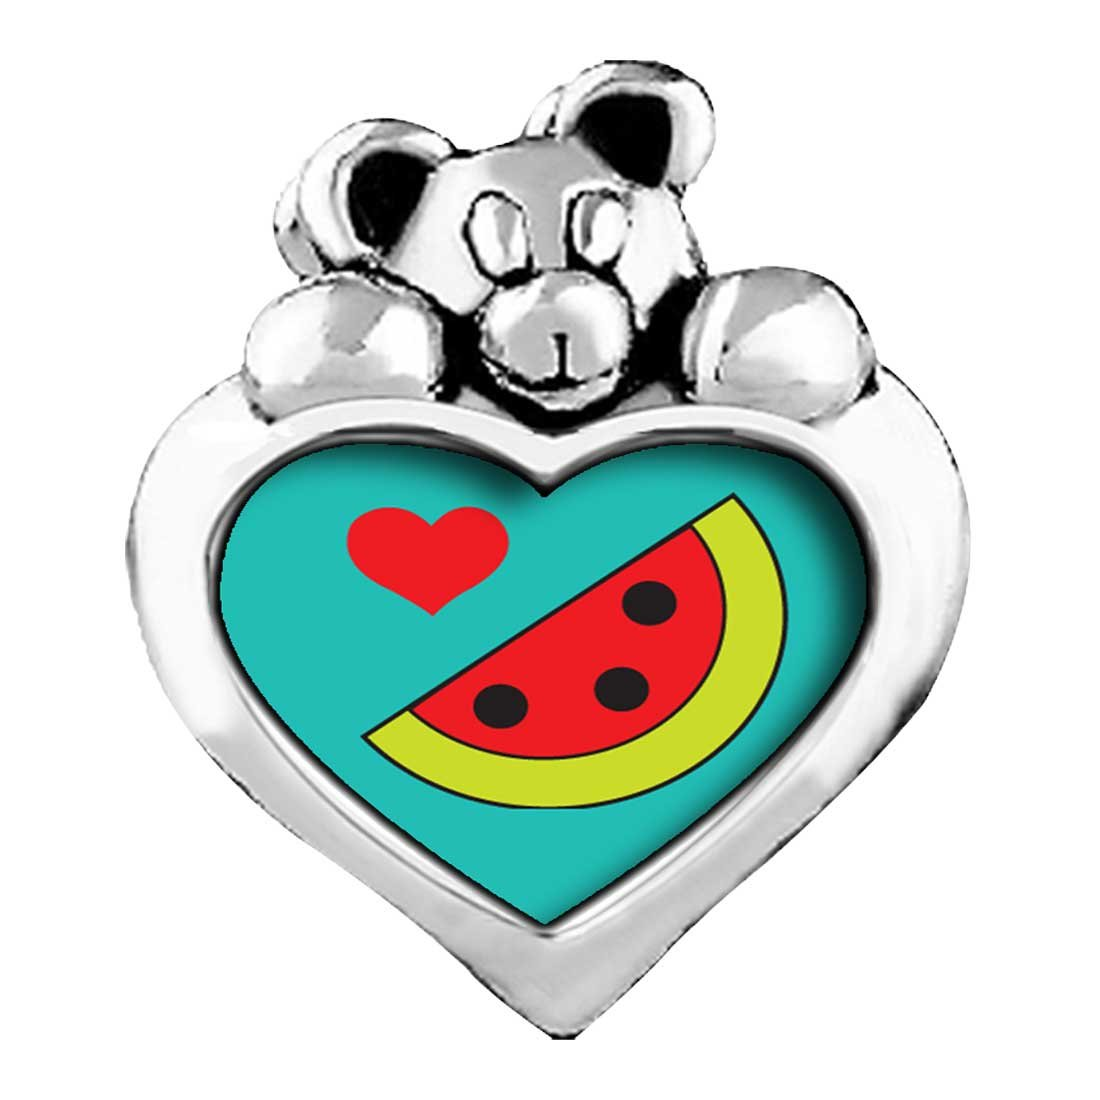 Heart Watermelon Red Siam Crystal January Birthstone I Love You Heart Care Bear Charm Beads Bracelets GiftJewelryShop